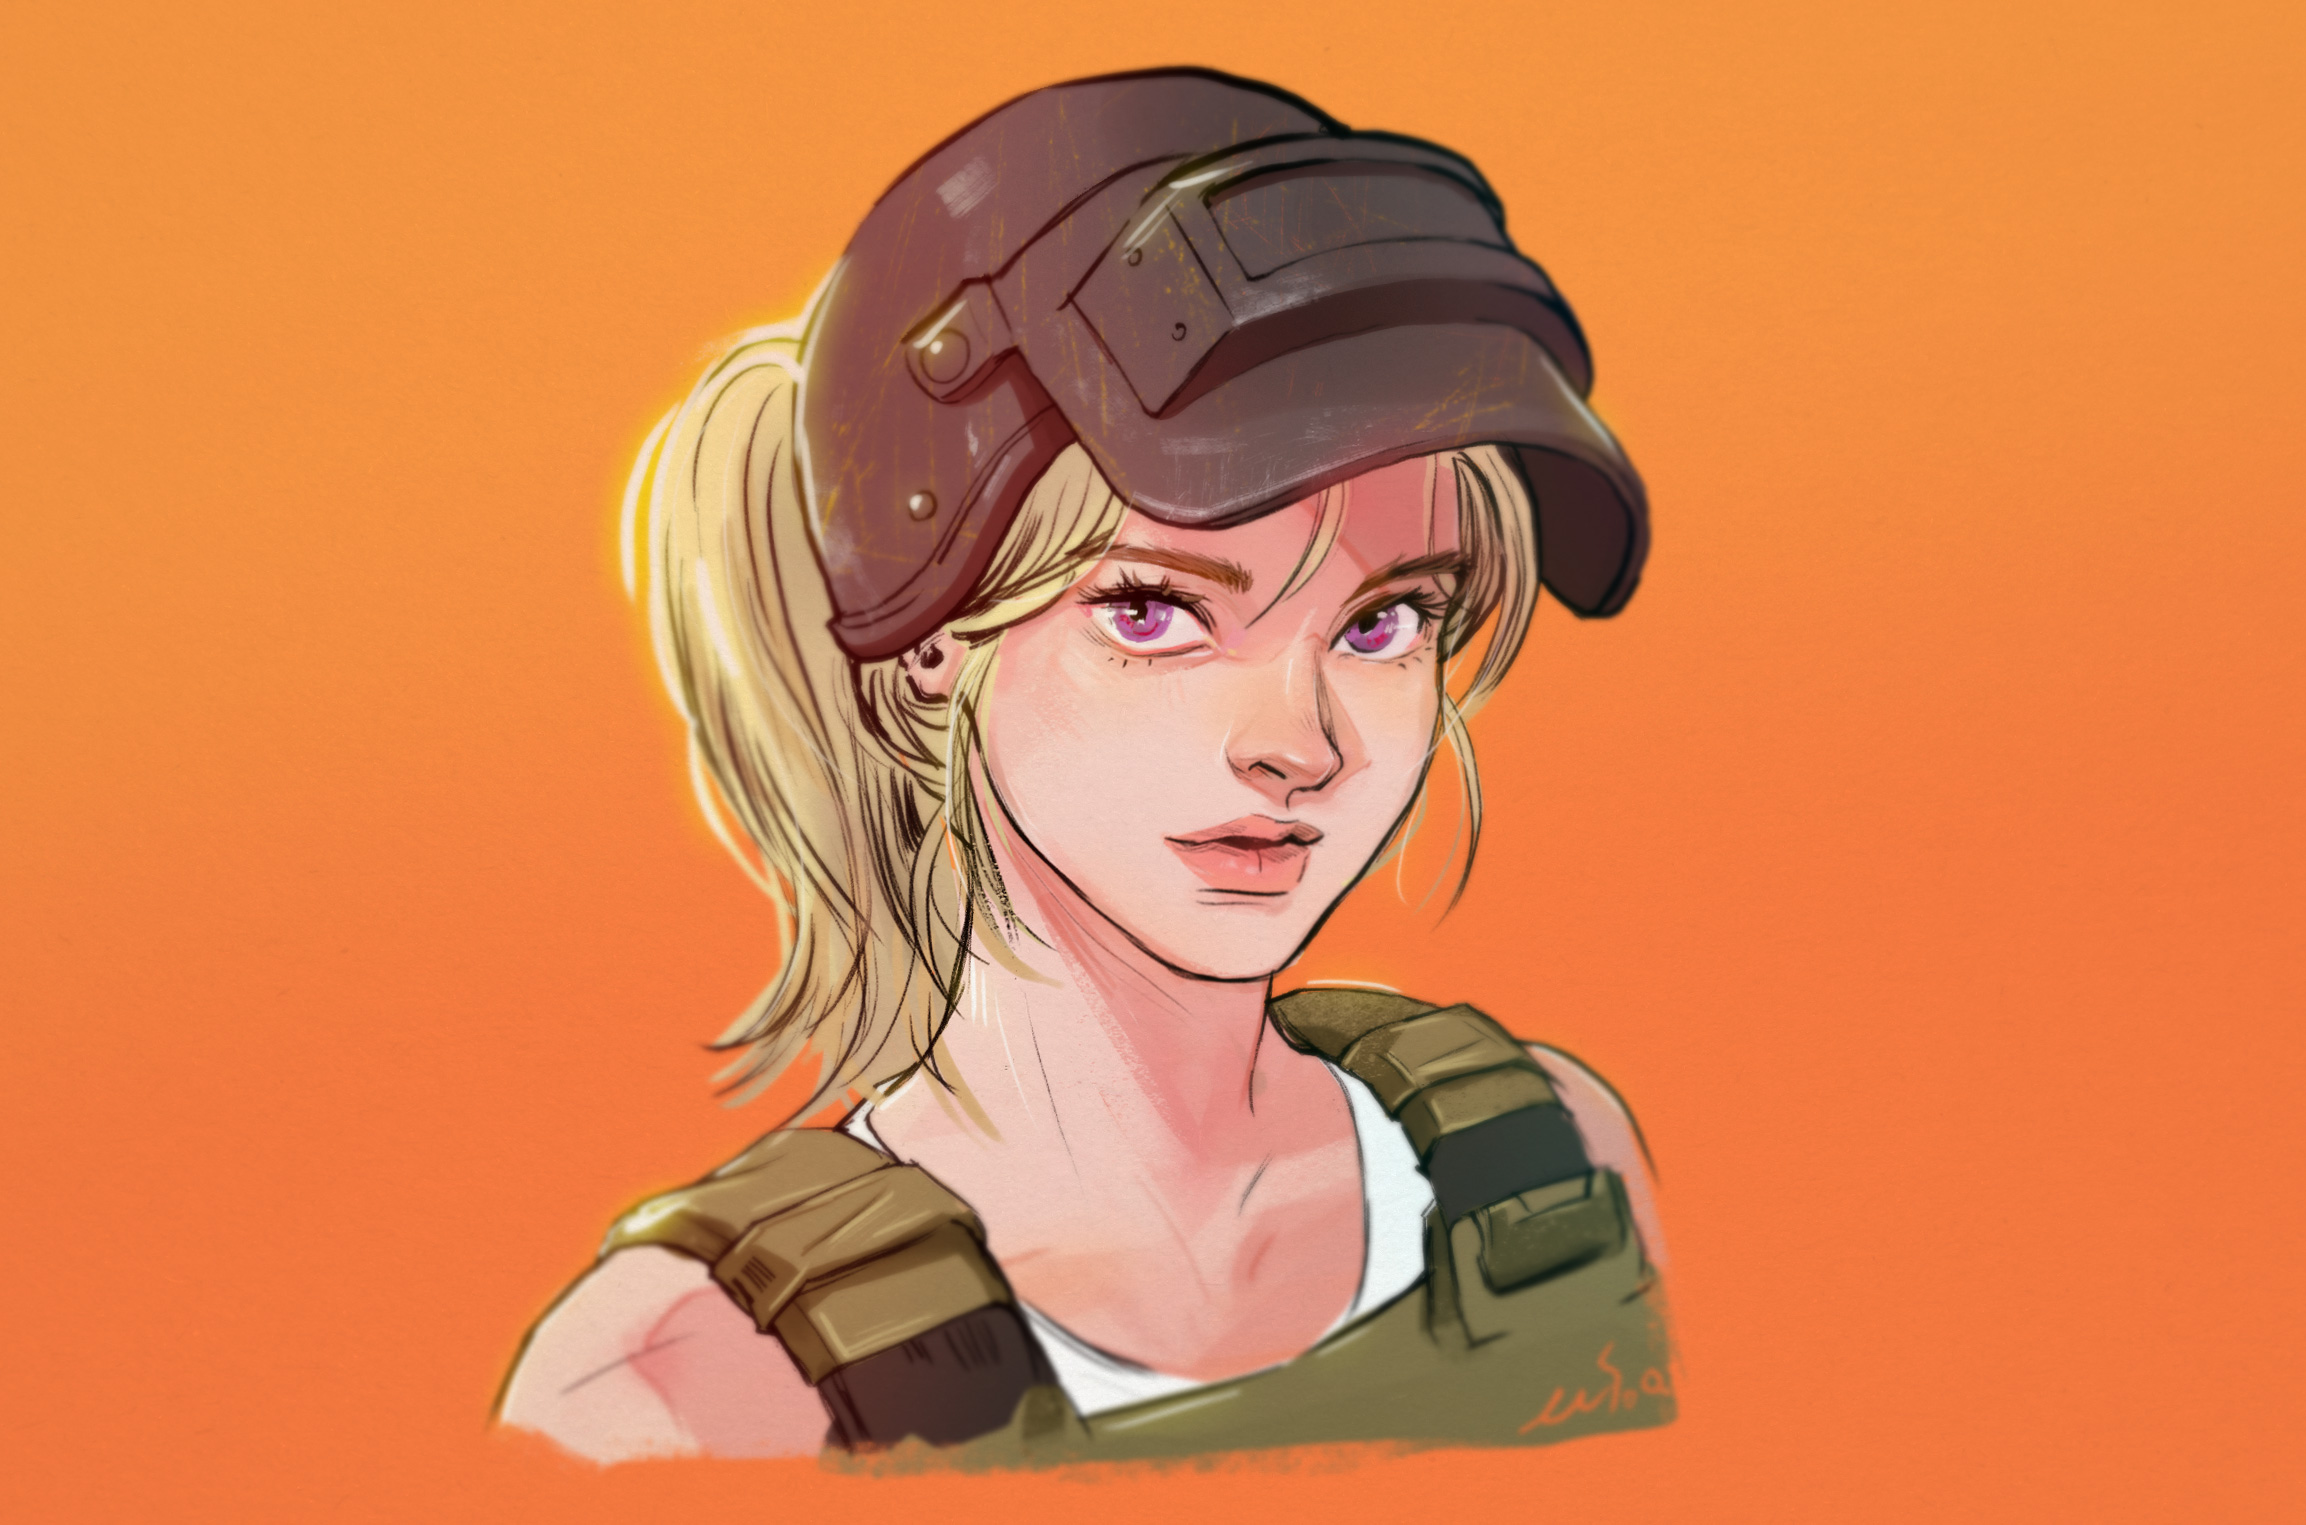 2048x1152 Pubg Girl 2048x1152 Resolution Hd 4k Wallpapers Images